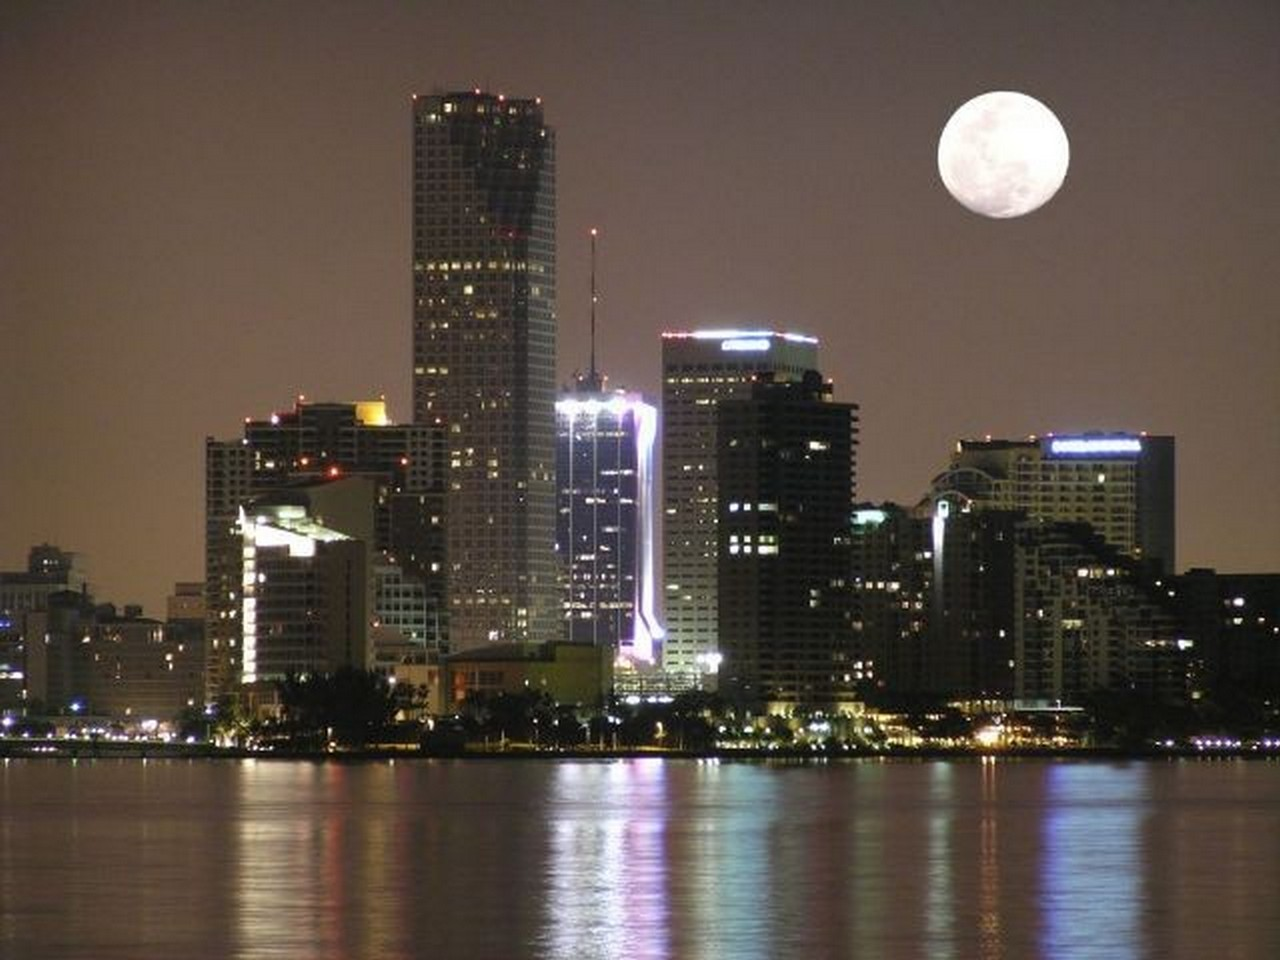 Miami moonlight 1280 x 960